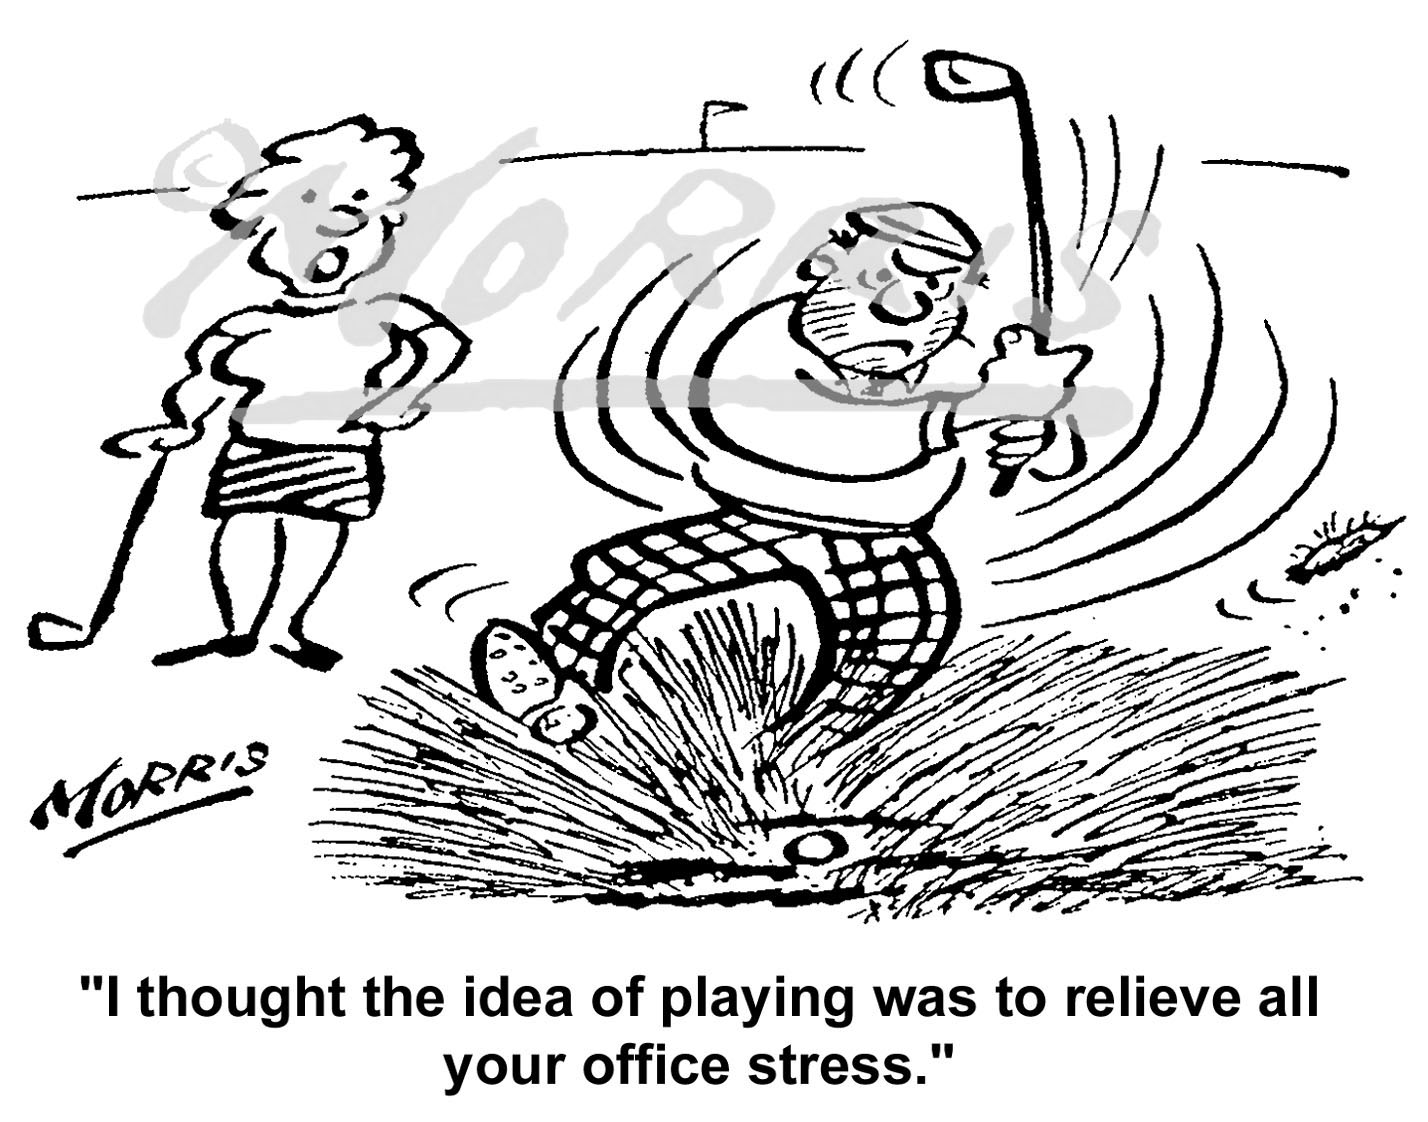 Stress cartoon, office cartoon, workplace cartoon, Golf cartoon, Golfing cartoon – Ref: 5208bw